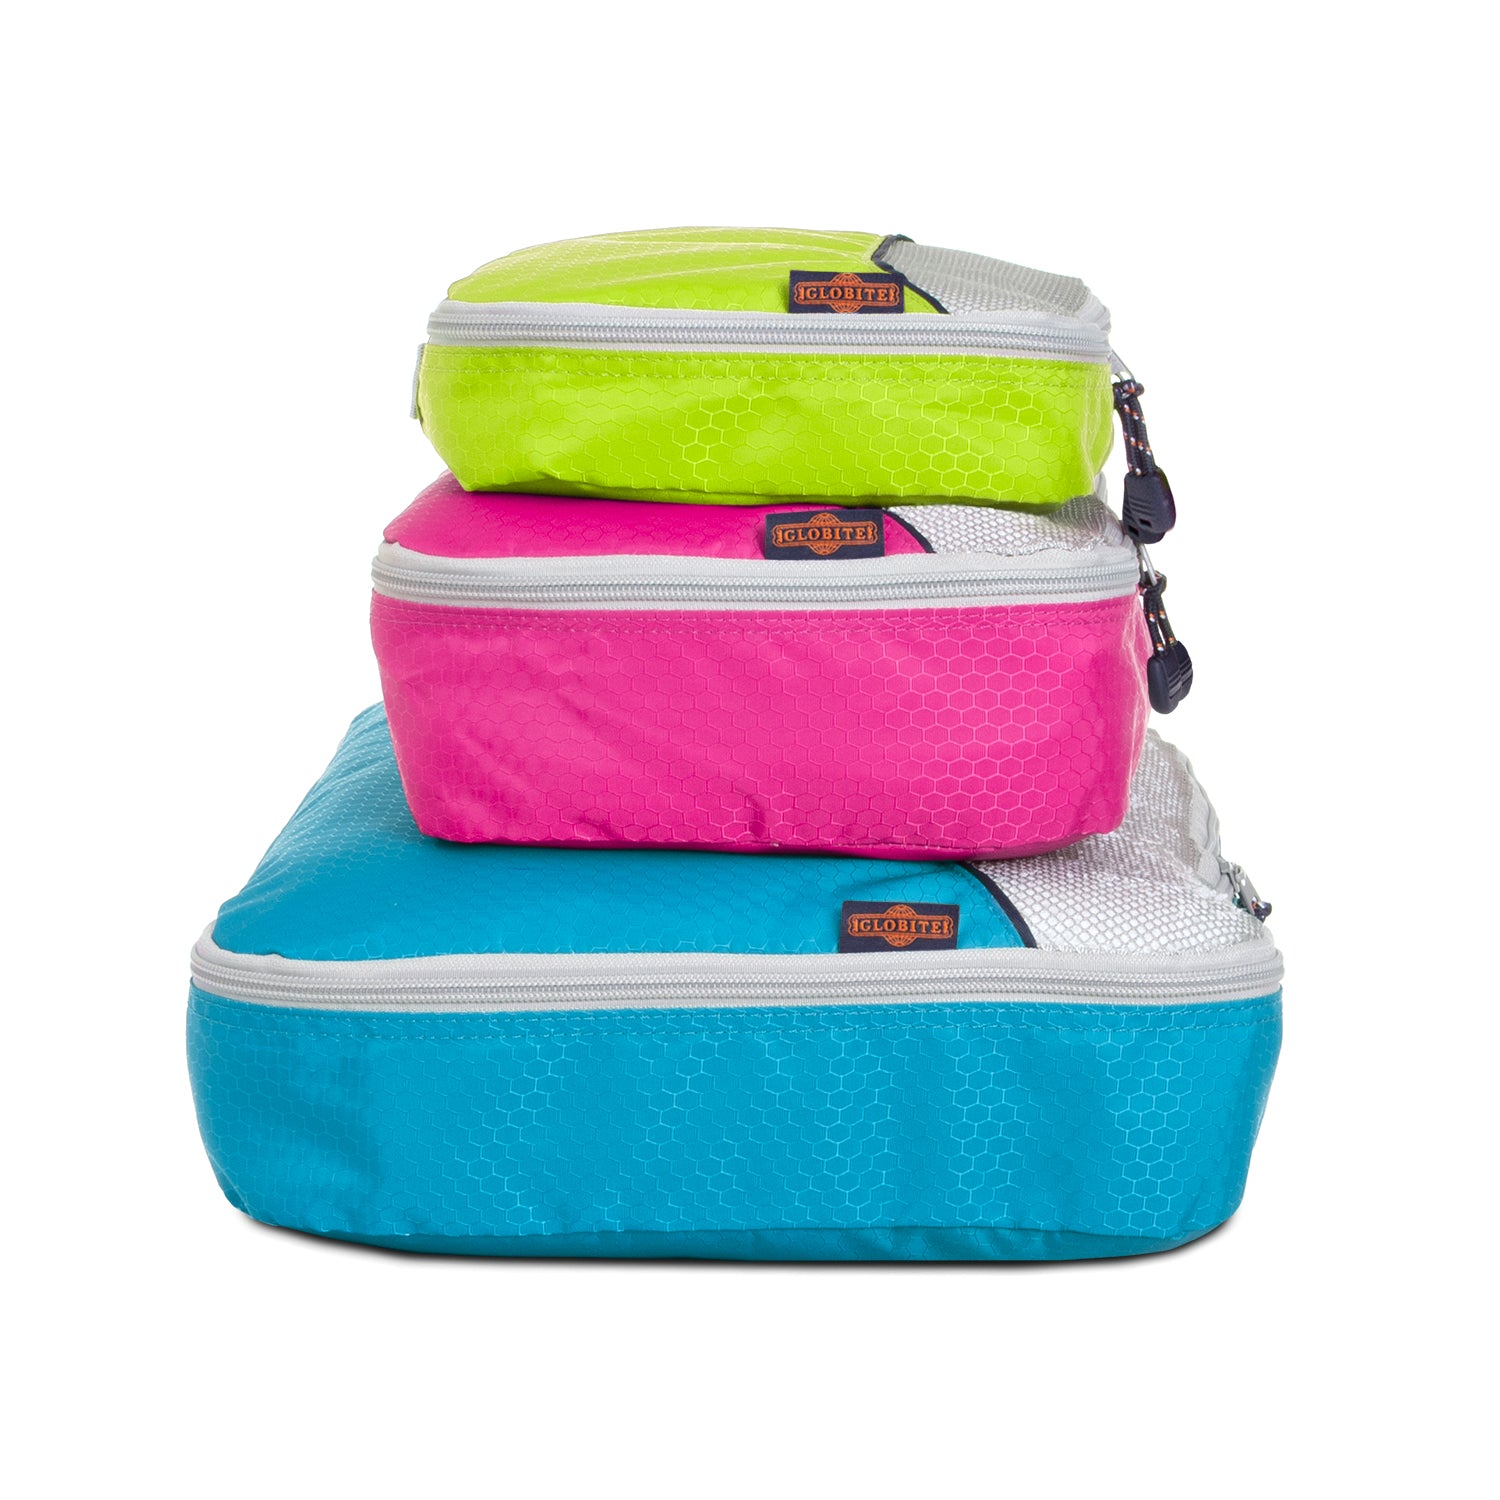 Packing Cube 3 Piece - Brights - globite